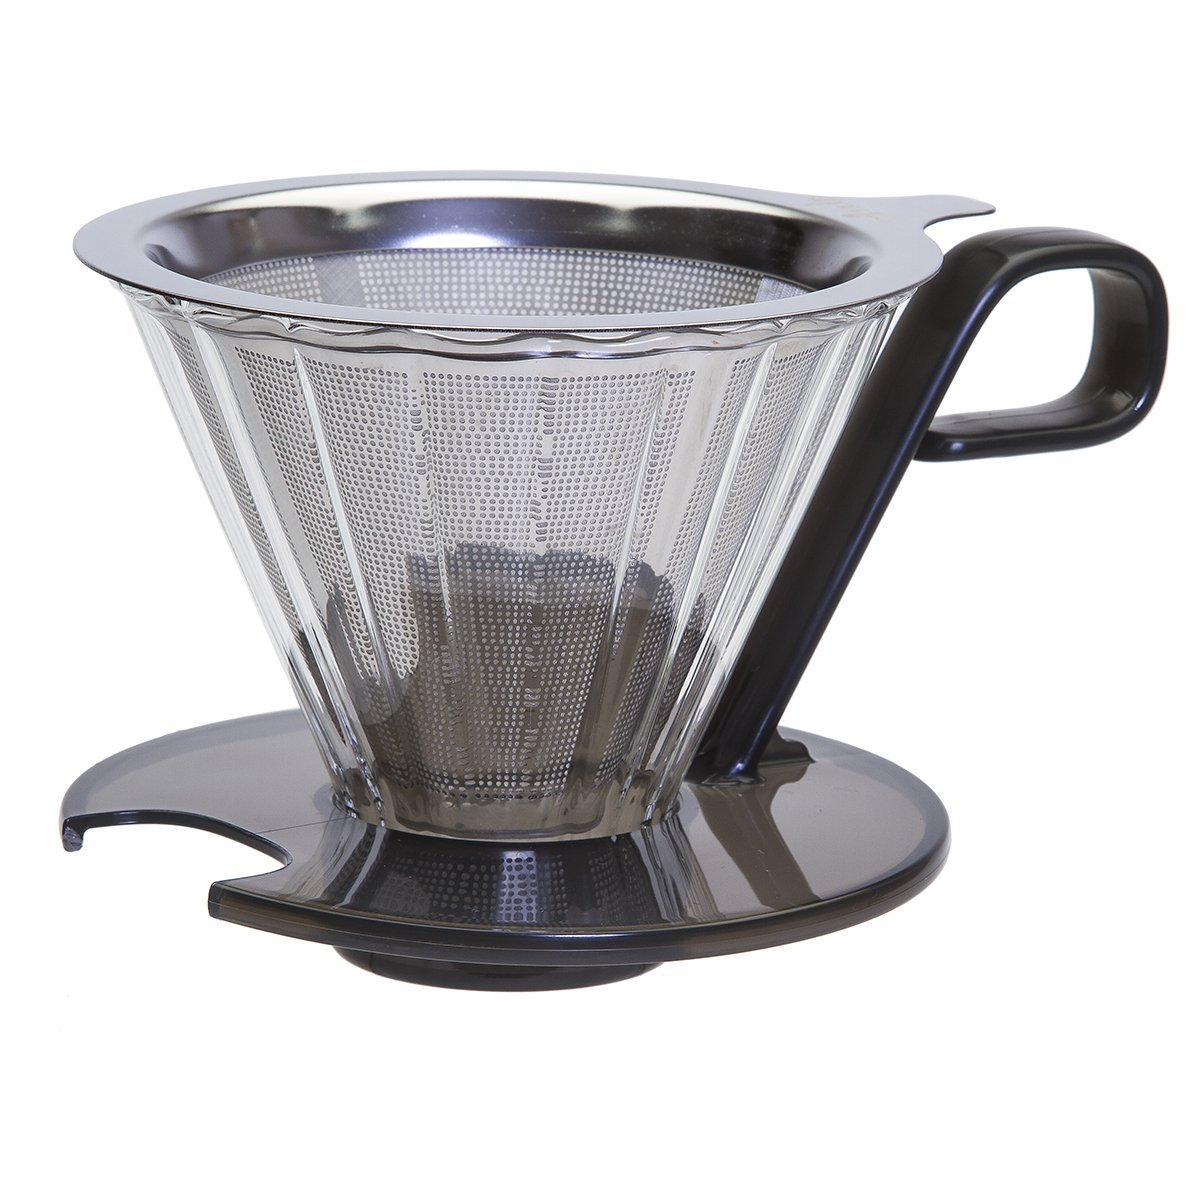 Primula PPOCD-6701 1-Cup Stainless Steel Pour Over Coffee Maker, 4.8 x 4.8 x 4.8 inches, Black by Primula